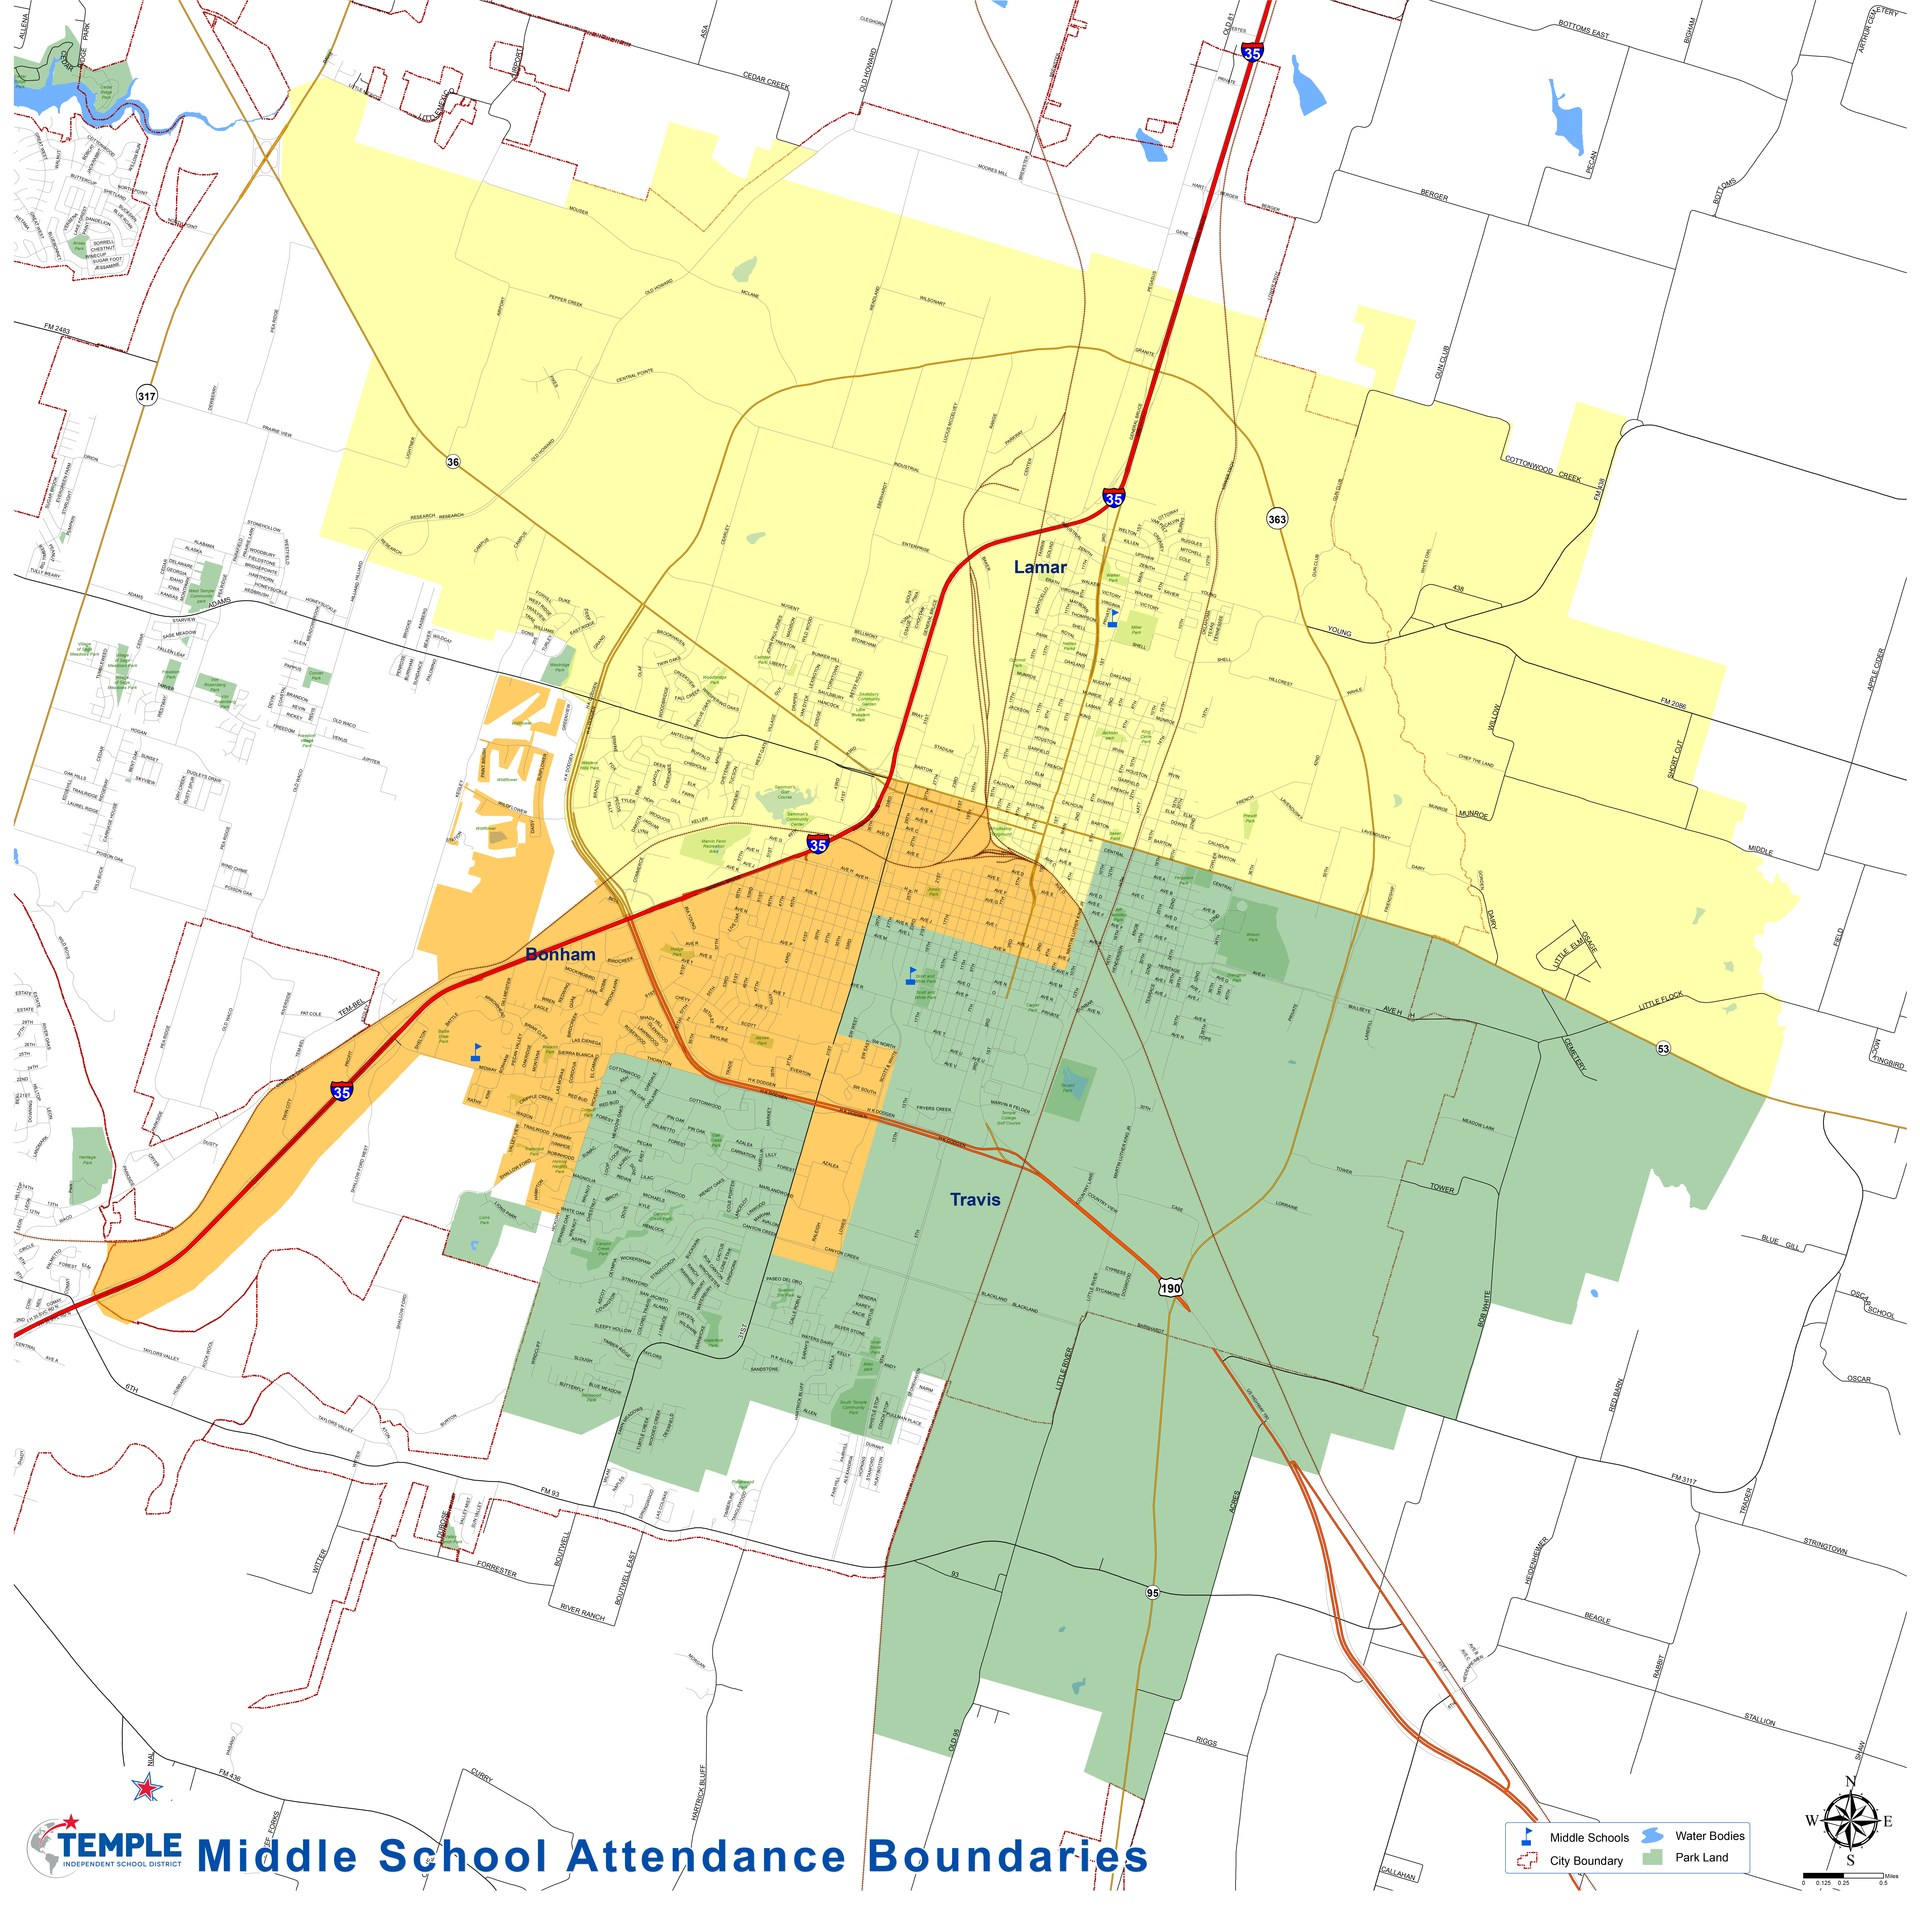 Middle School Attendance Boundaries